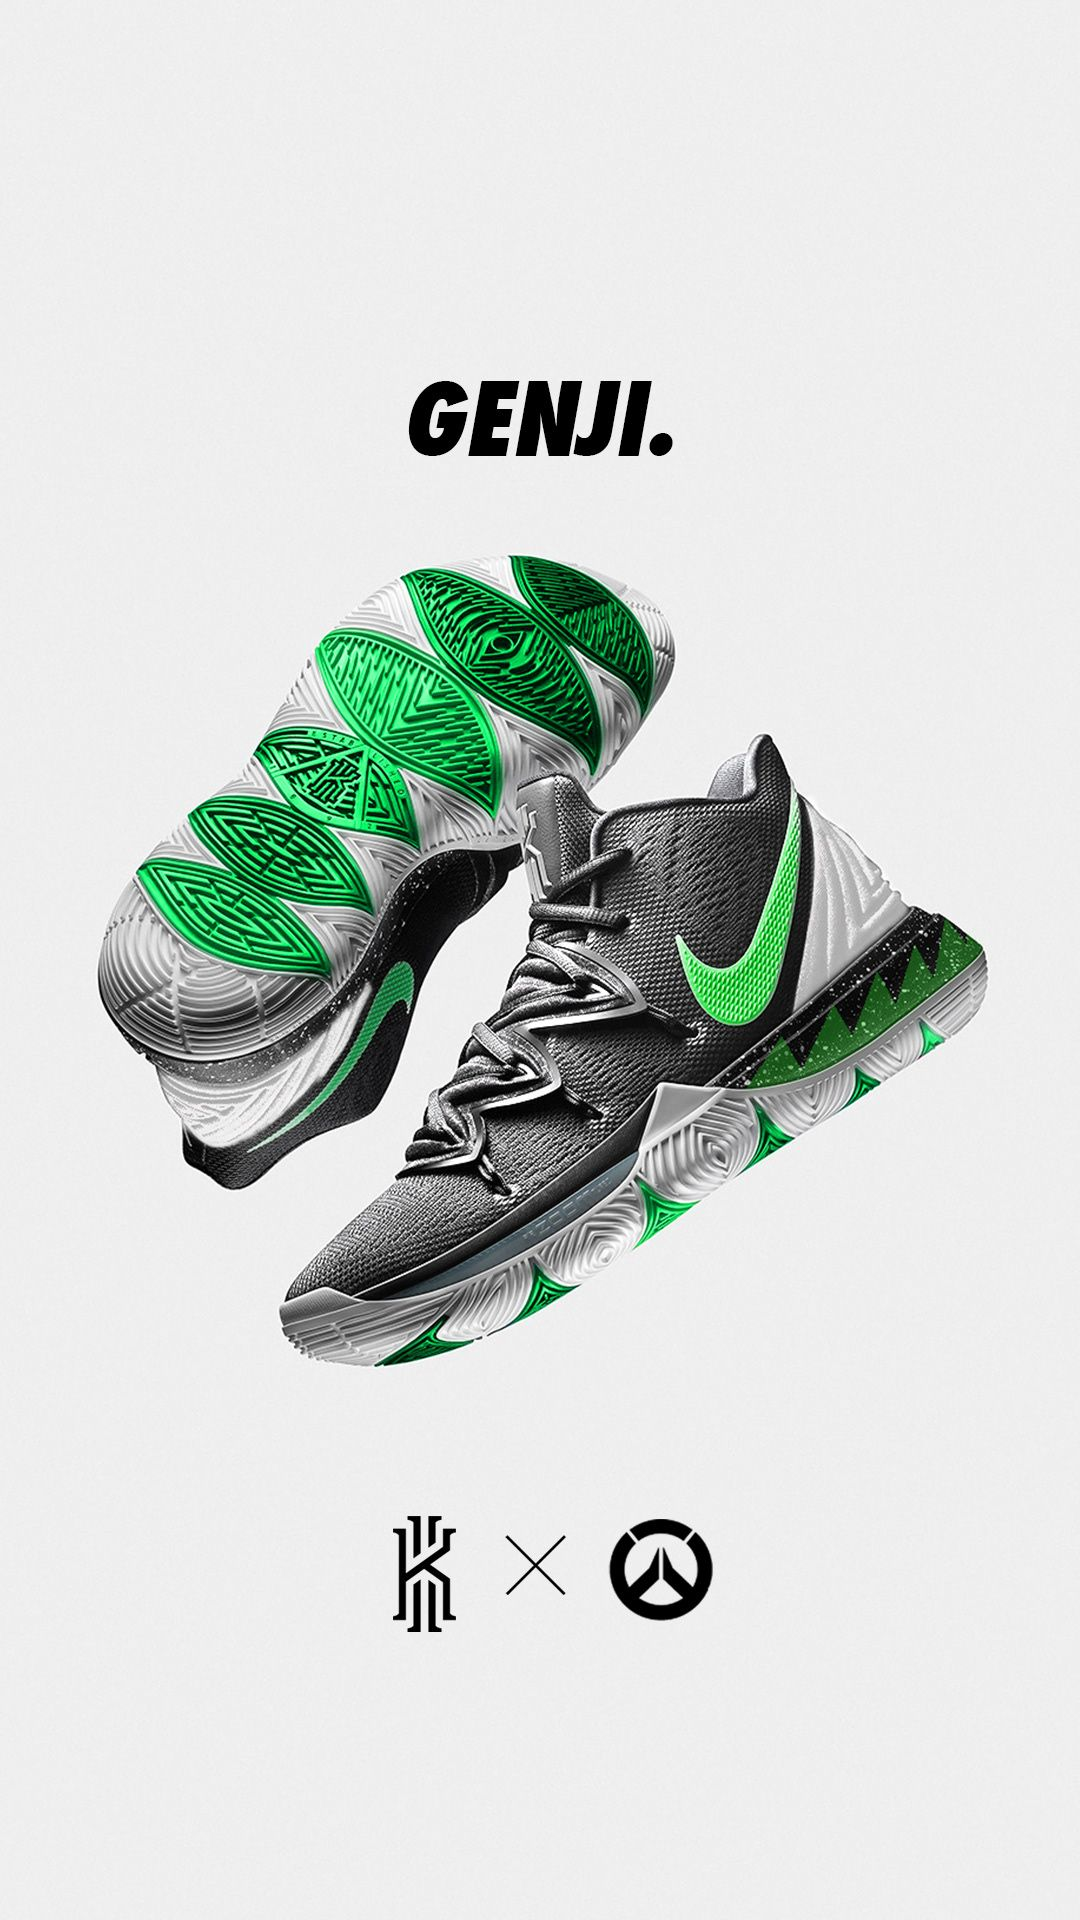 best loved 5b111 a4297 Nike Kyrie 5 X Overwatch Concepts on Behance